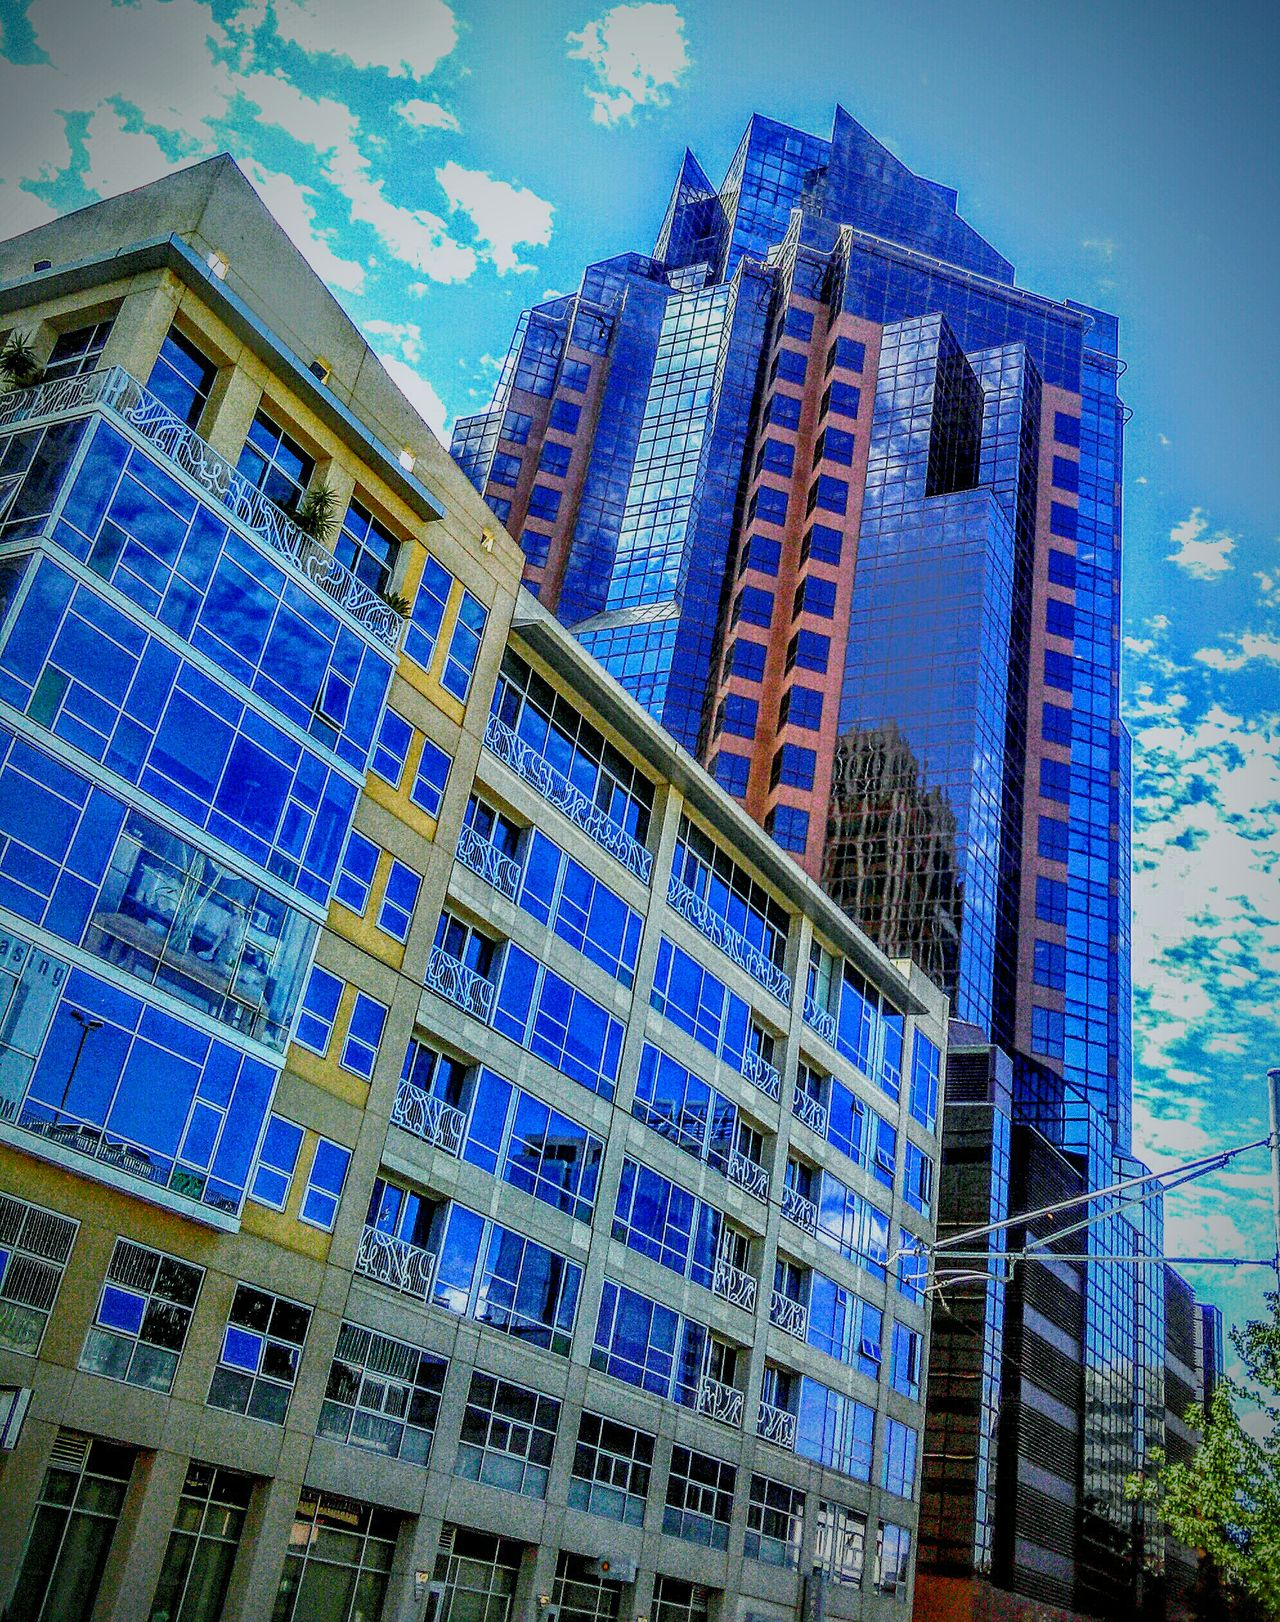 Downtown Sacramento  Street Photography Architecture Photography Reflections Reflections In The Glass Windows Building Photography Eye4photography  Reflection In The Window My Photography Taking Photos ❤ Natural Light Portrait Sky And Clouds